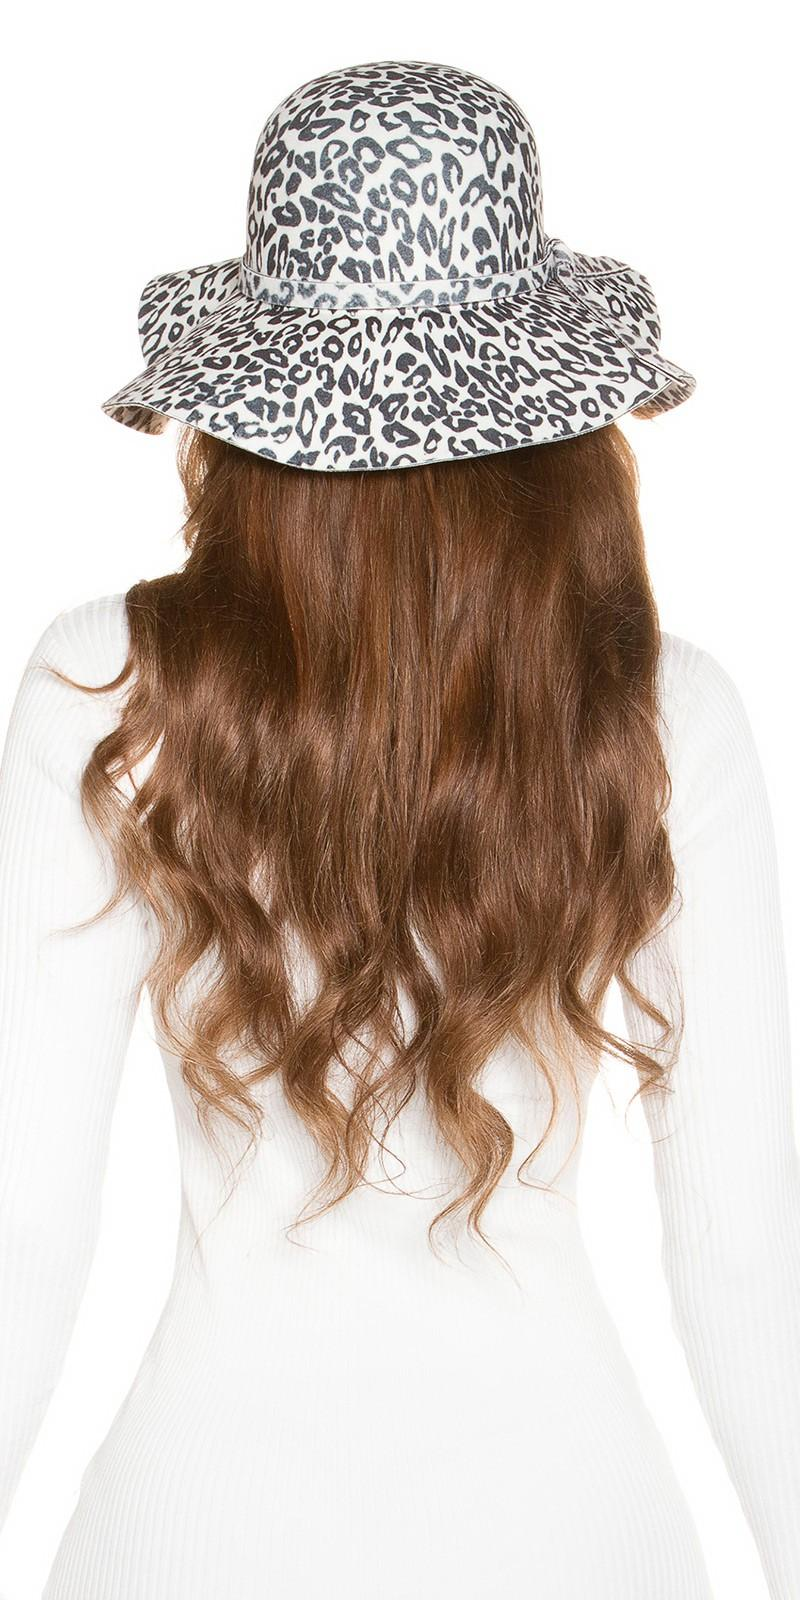 Sombrero animal print blanco